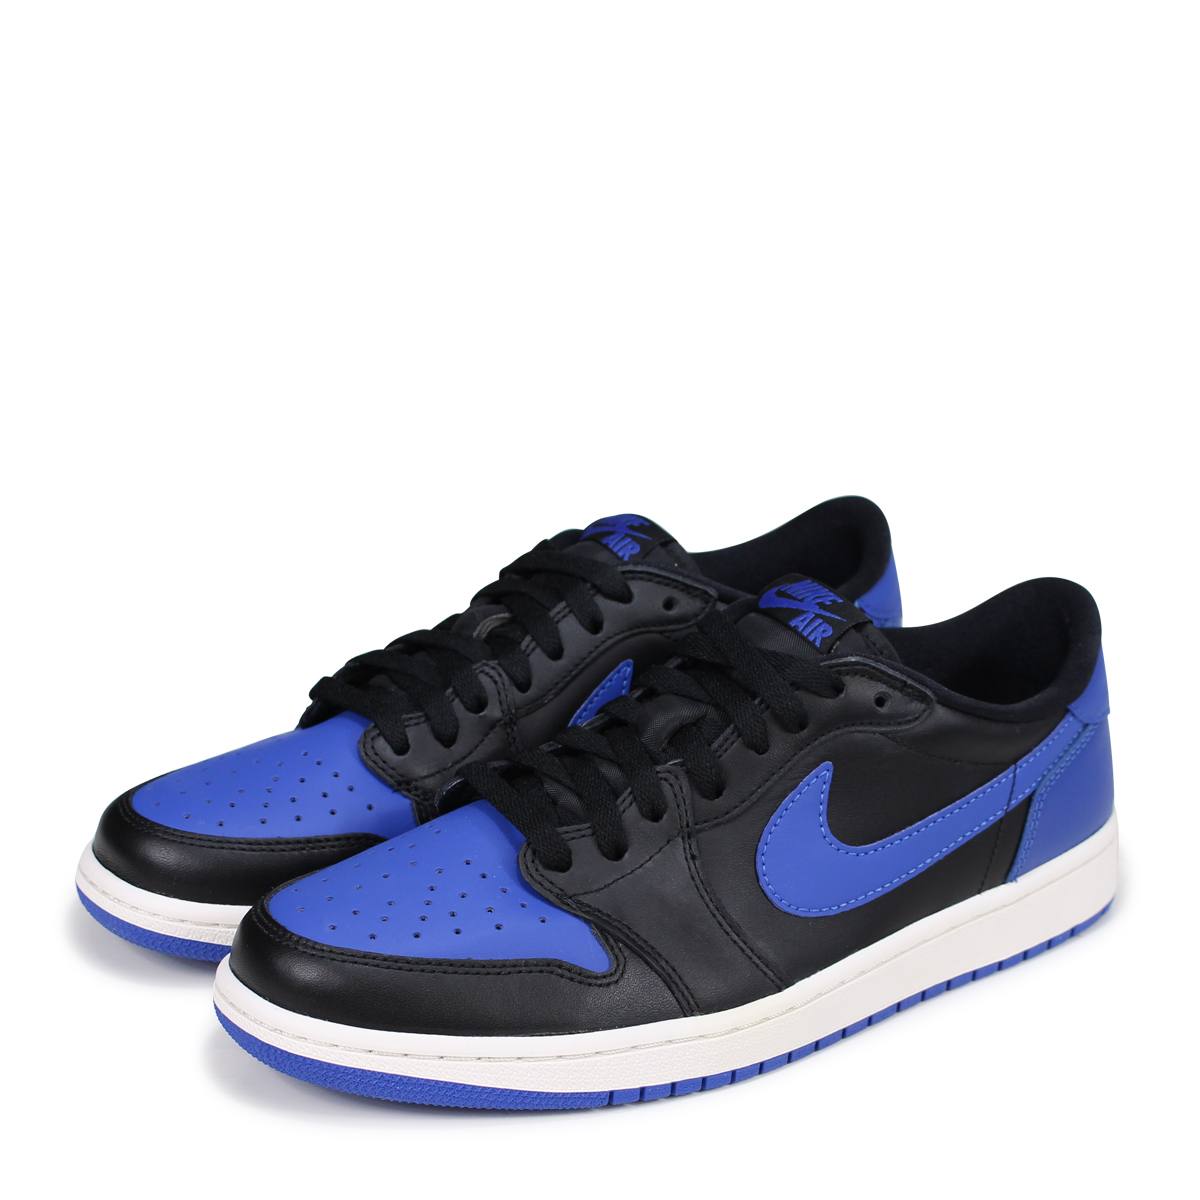 NIKE AIR JORDAN 1 RETRO LOW OG Nike Air Jordan sneakers men Air Jordan 1 nostalgic low 705,329 004 blue [186]